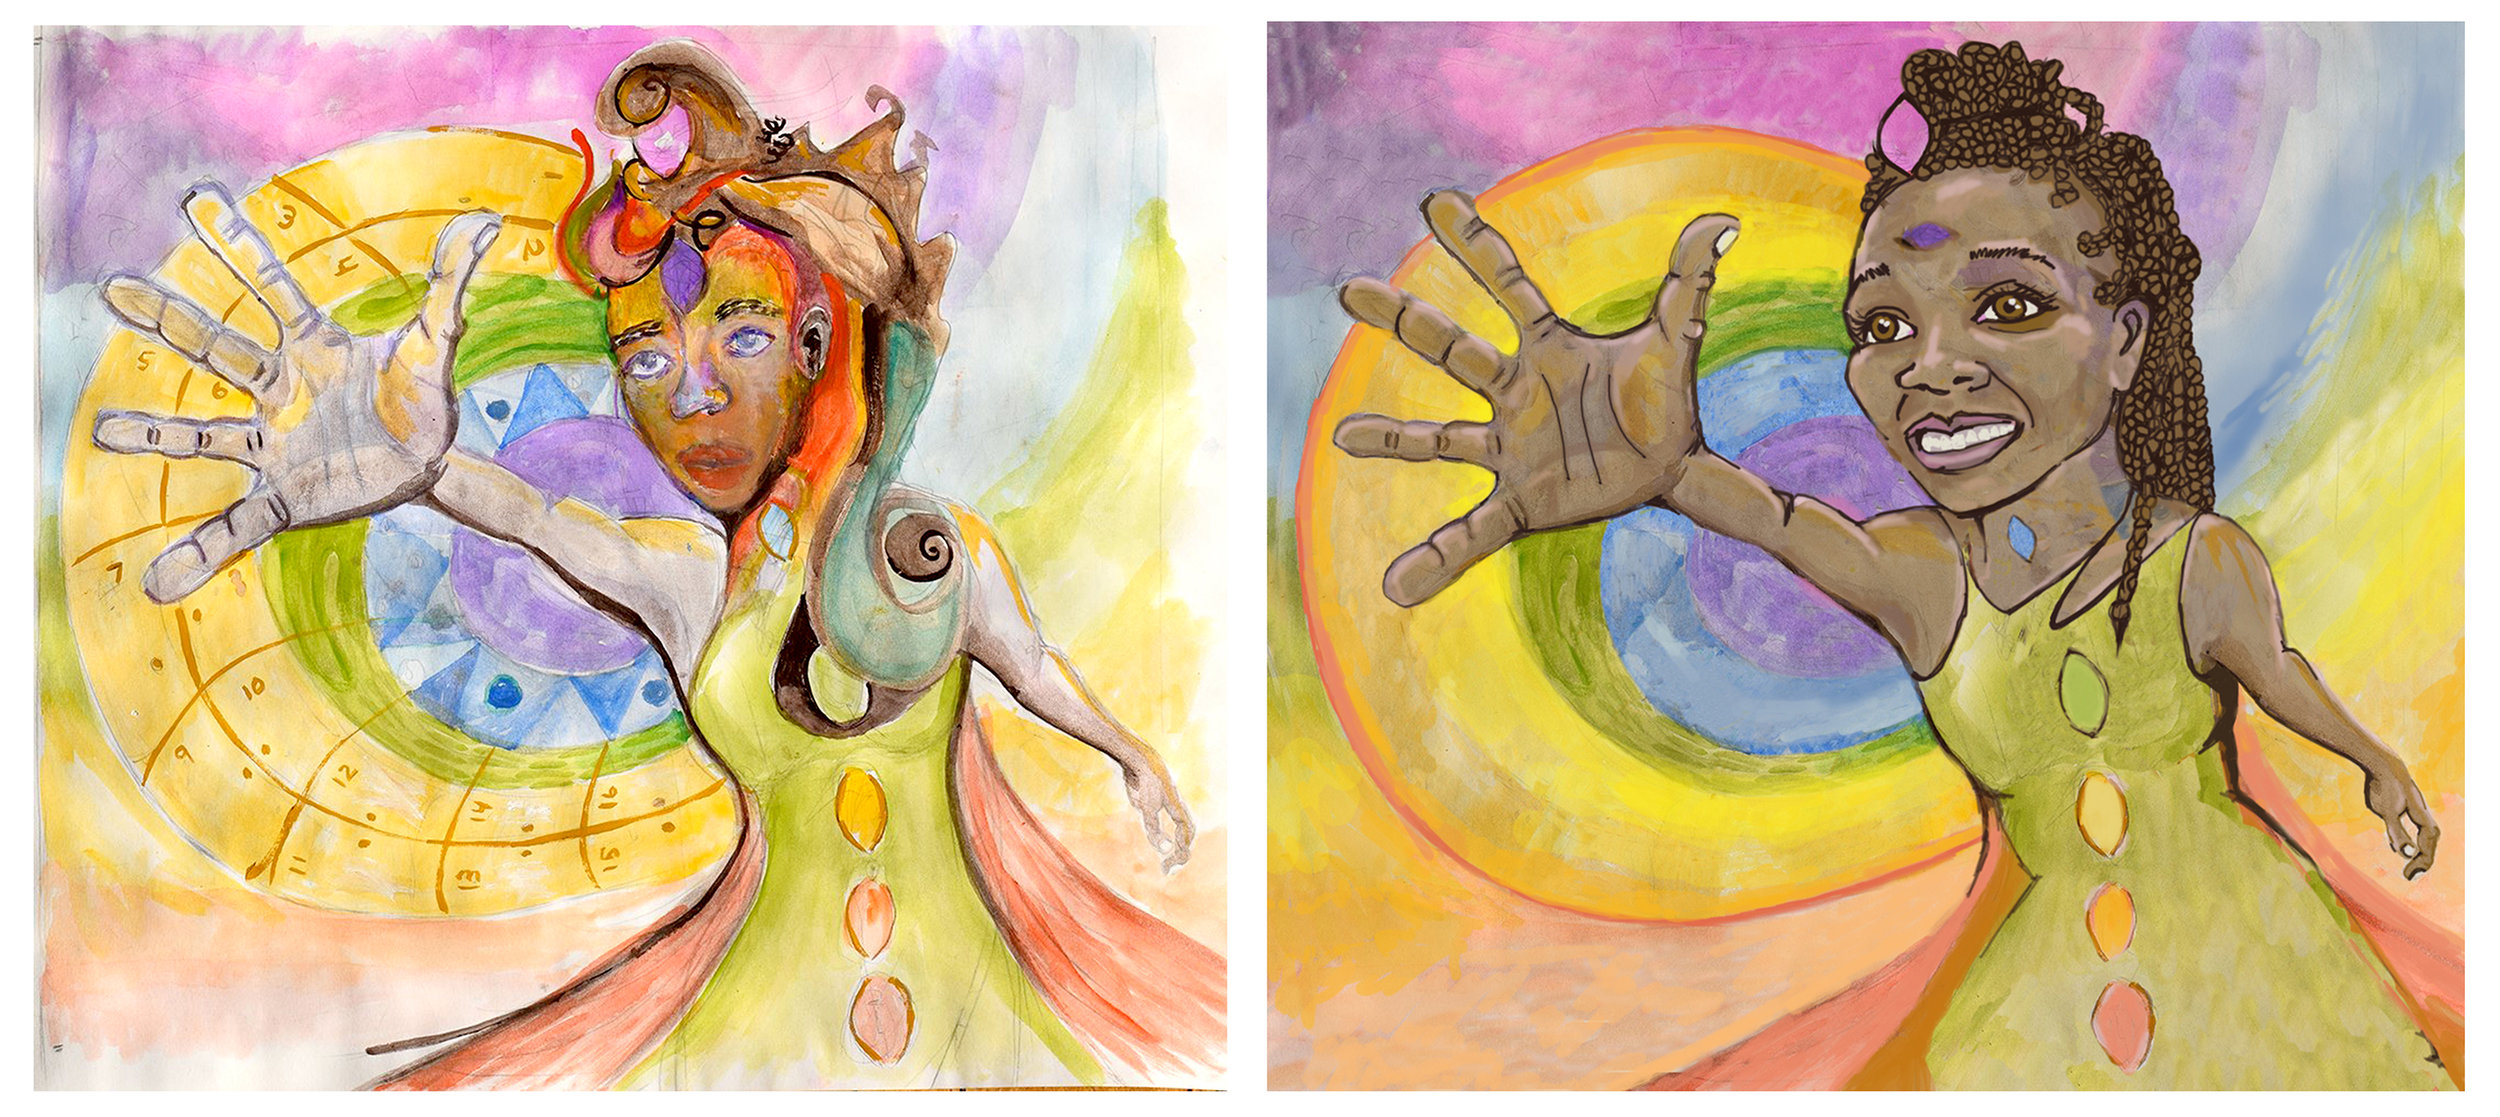 "LEFT: Original design used in the application for the Public Art Building Communities grant, jointly authored by Aja Adams and Lisa Marie Thalhammer. RIGHT: ""New"" image approved by the grantors for the mural, sole authorship claimed by Lisa Marie Thalhammer. Used by the former to retain grant monies without permission by co-creator Aja Adams."